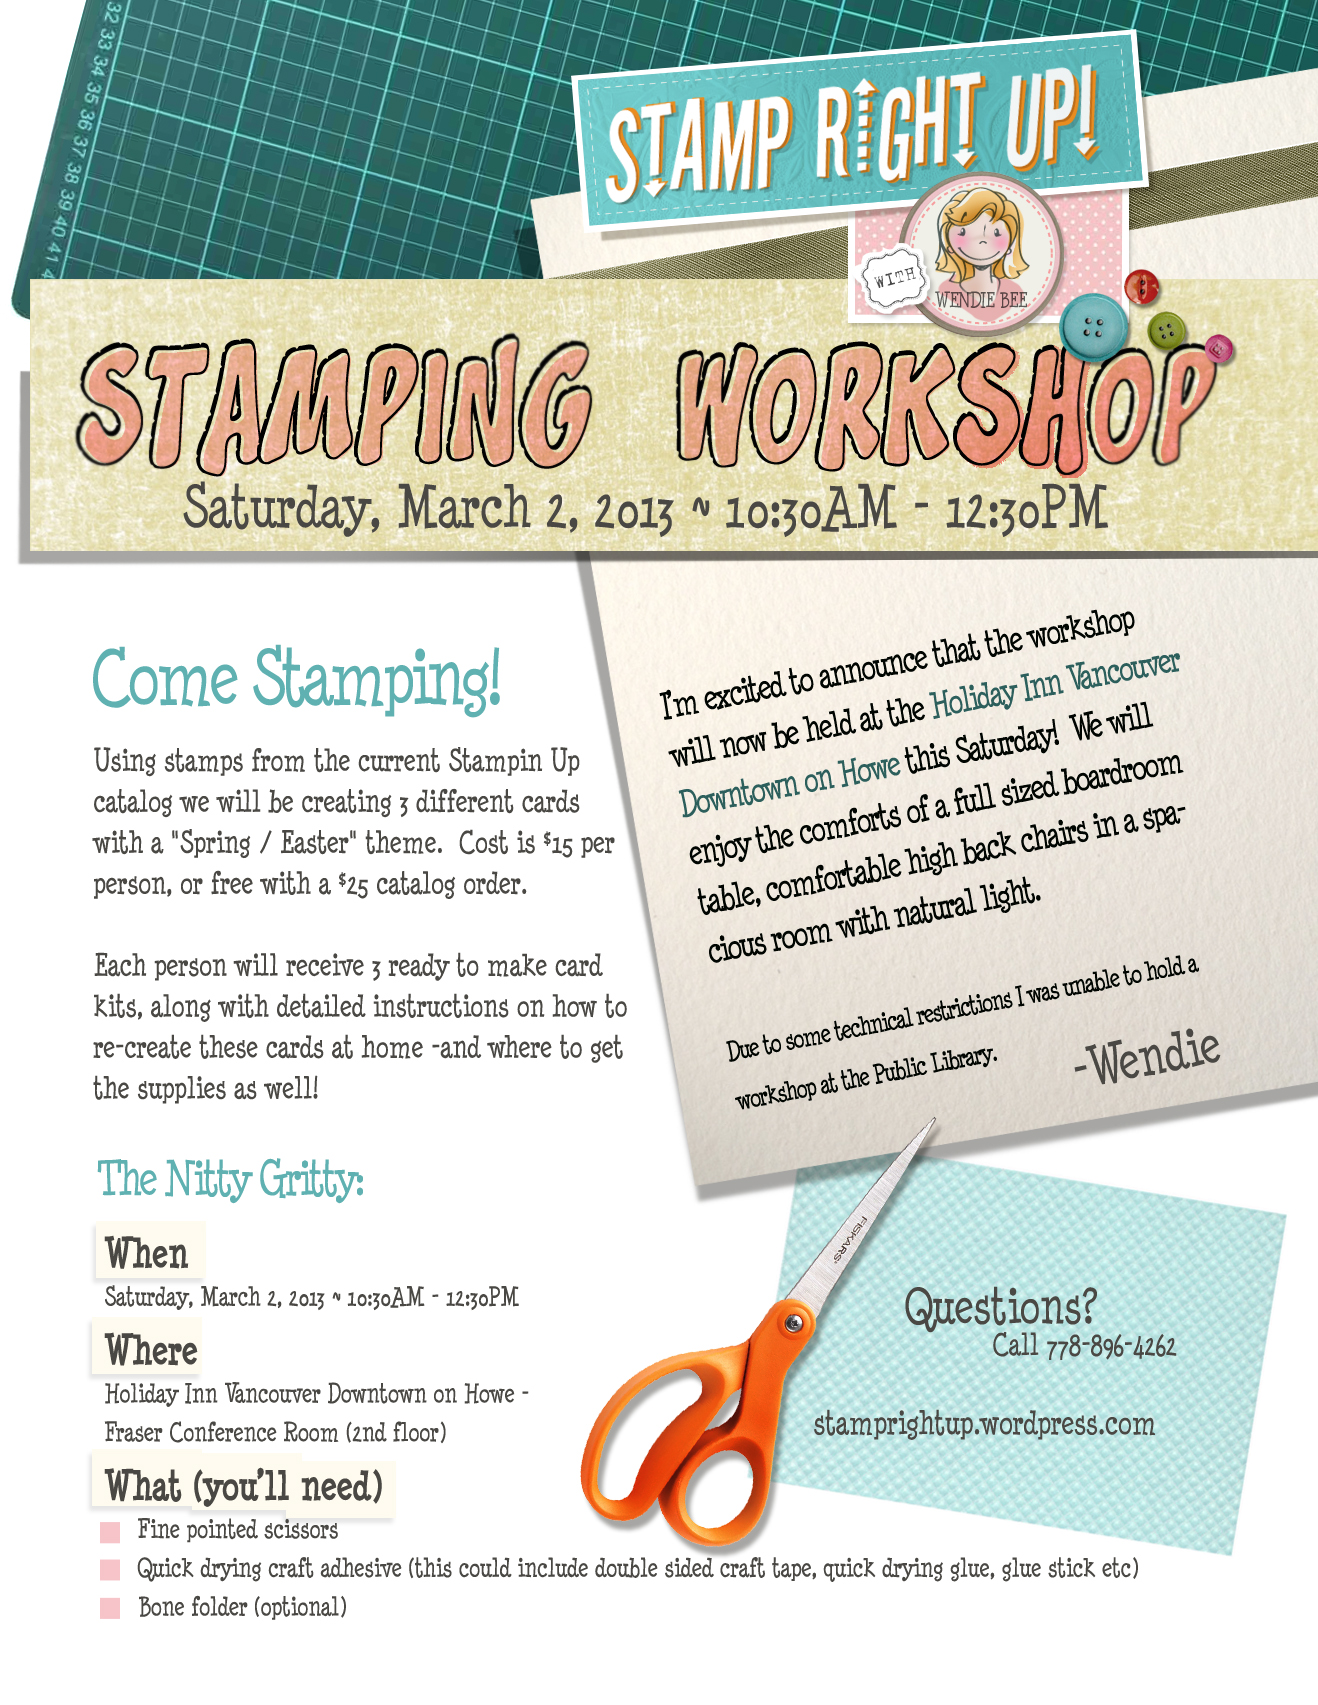 Stamprightup Work Shop – March 2nd Vancouver, BC